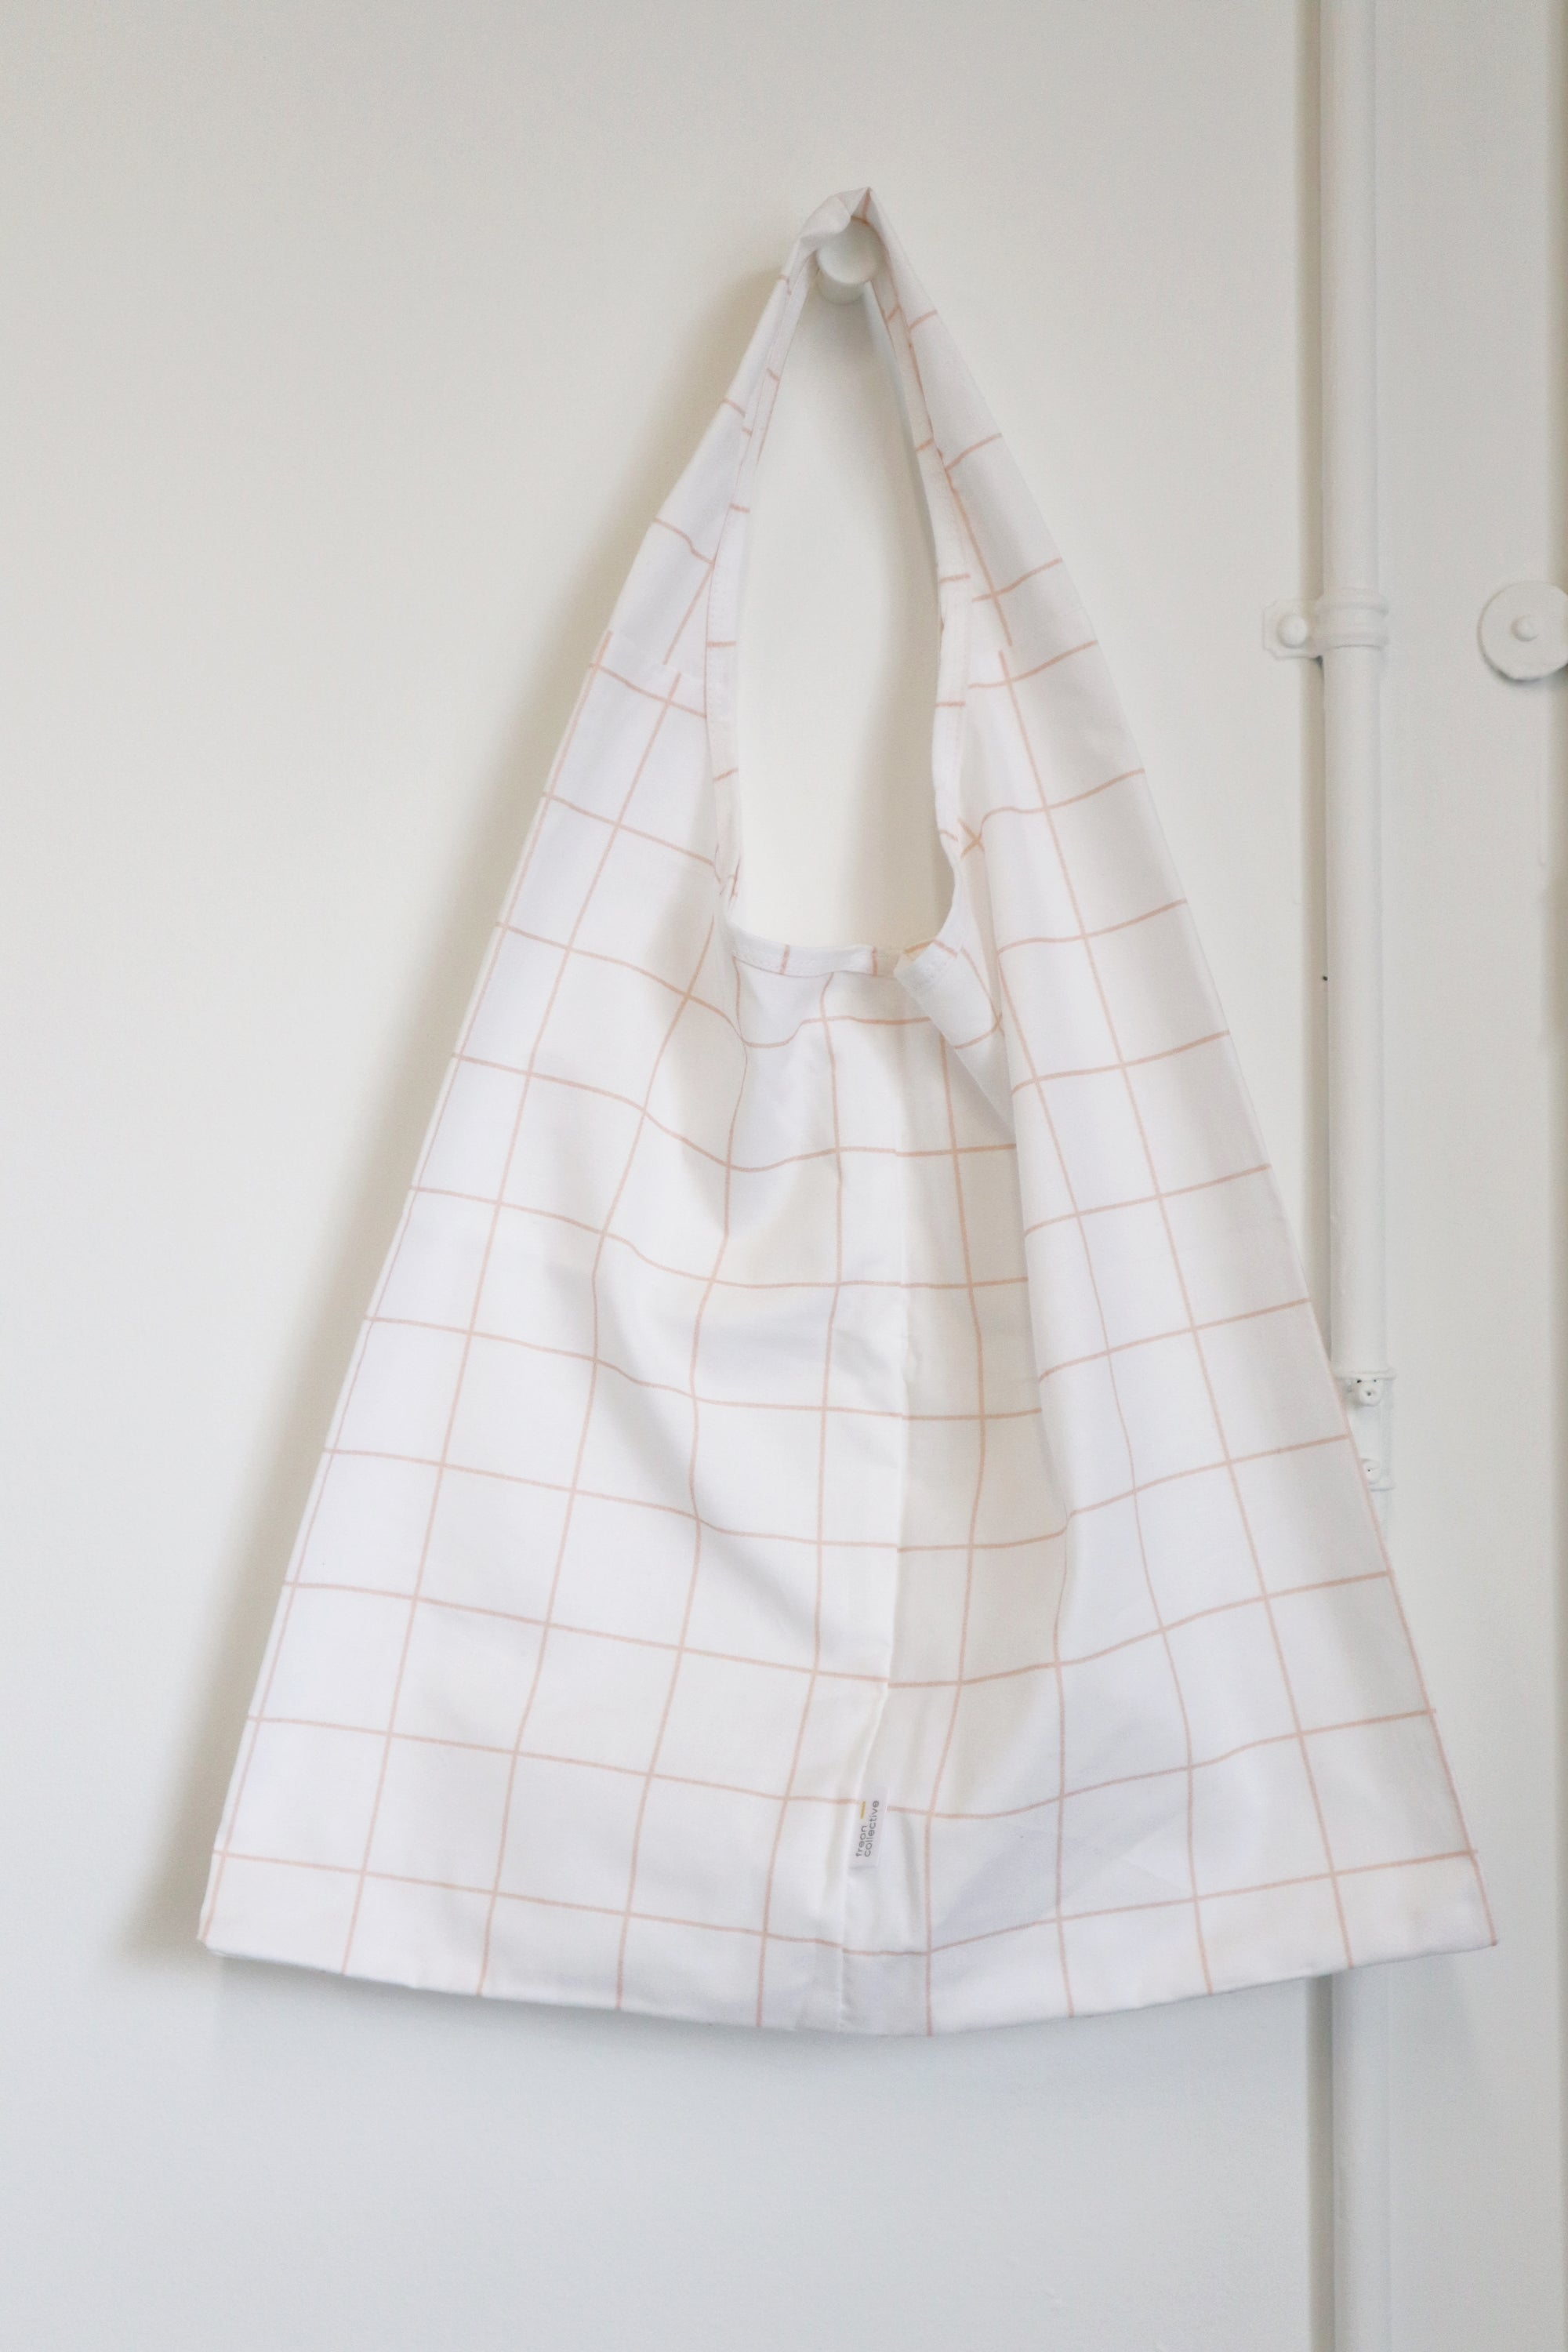 Market Bag - Grid (Second Samples)